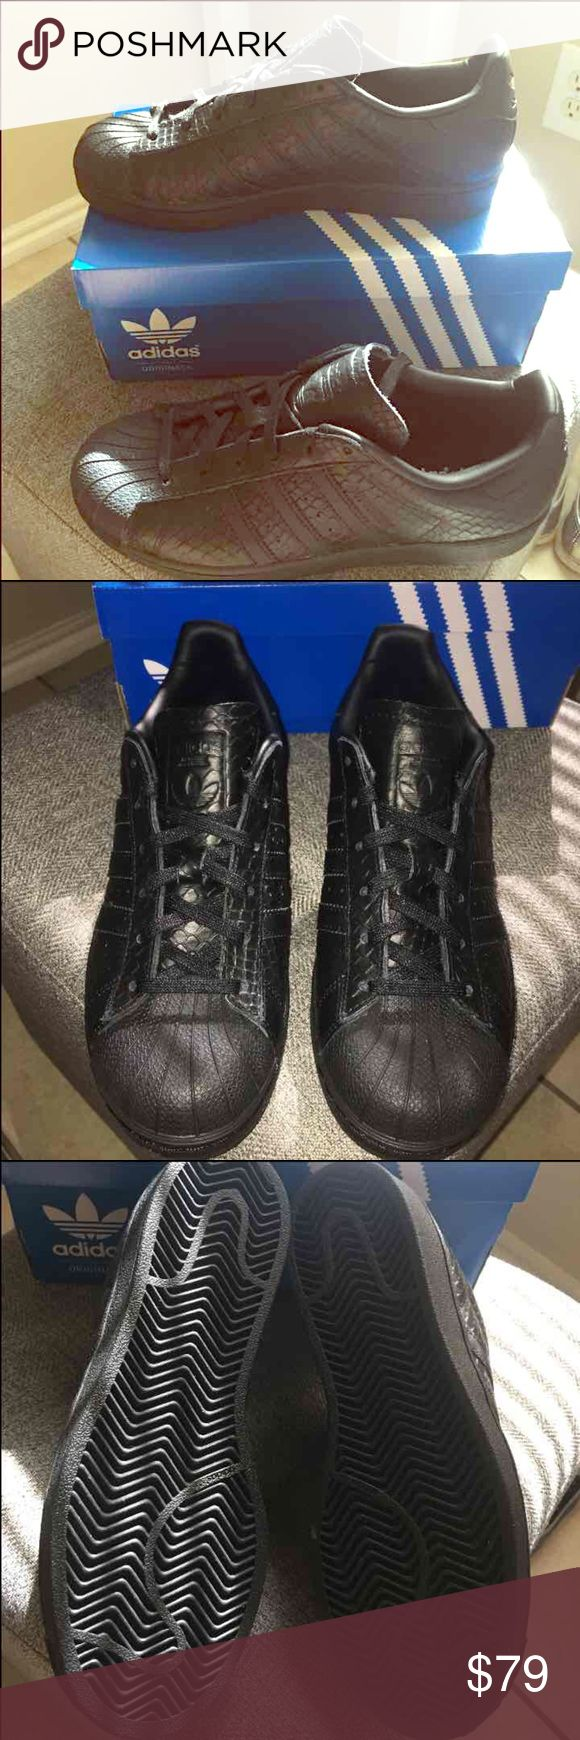 Authentic Adidas superstar textured black snake. NWT Adidas superstar textured black snake. 100% authentic  Size 7 ( I'm size 7.5 and this fits me perfectly but please be sure it is your size before buying). Box included. PRICE IS FIRM:) NO TRADES:) Adidas Shoes Sneakers